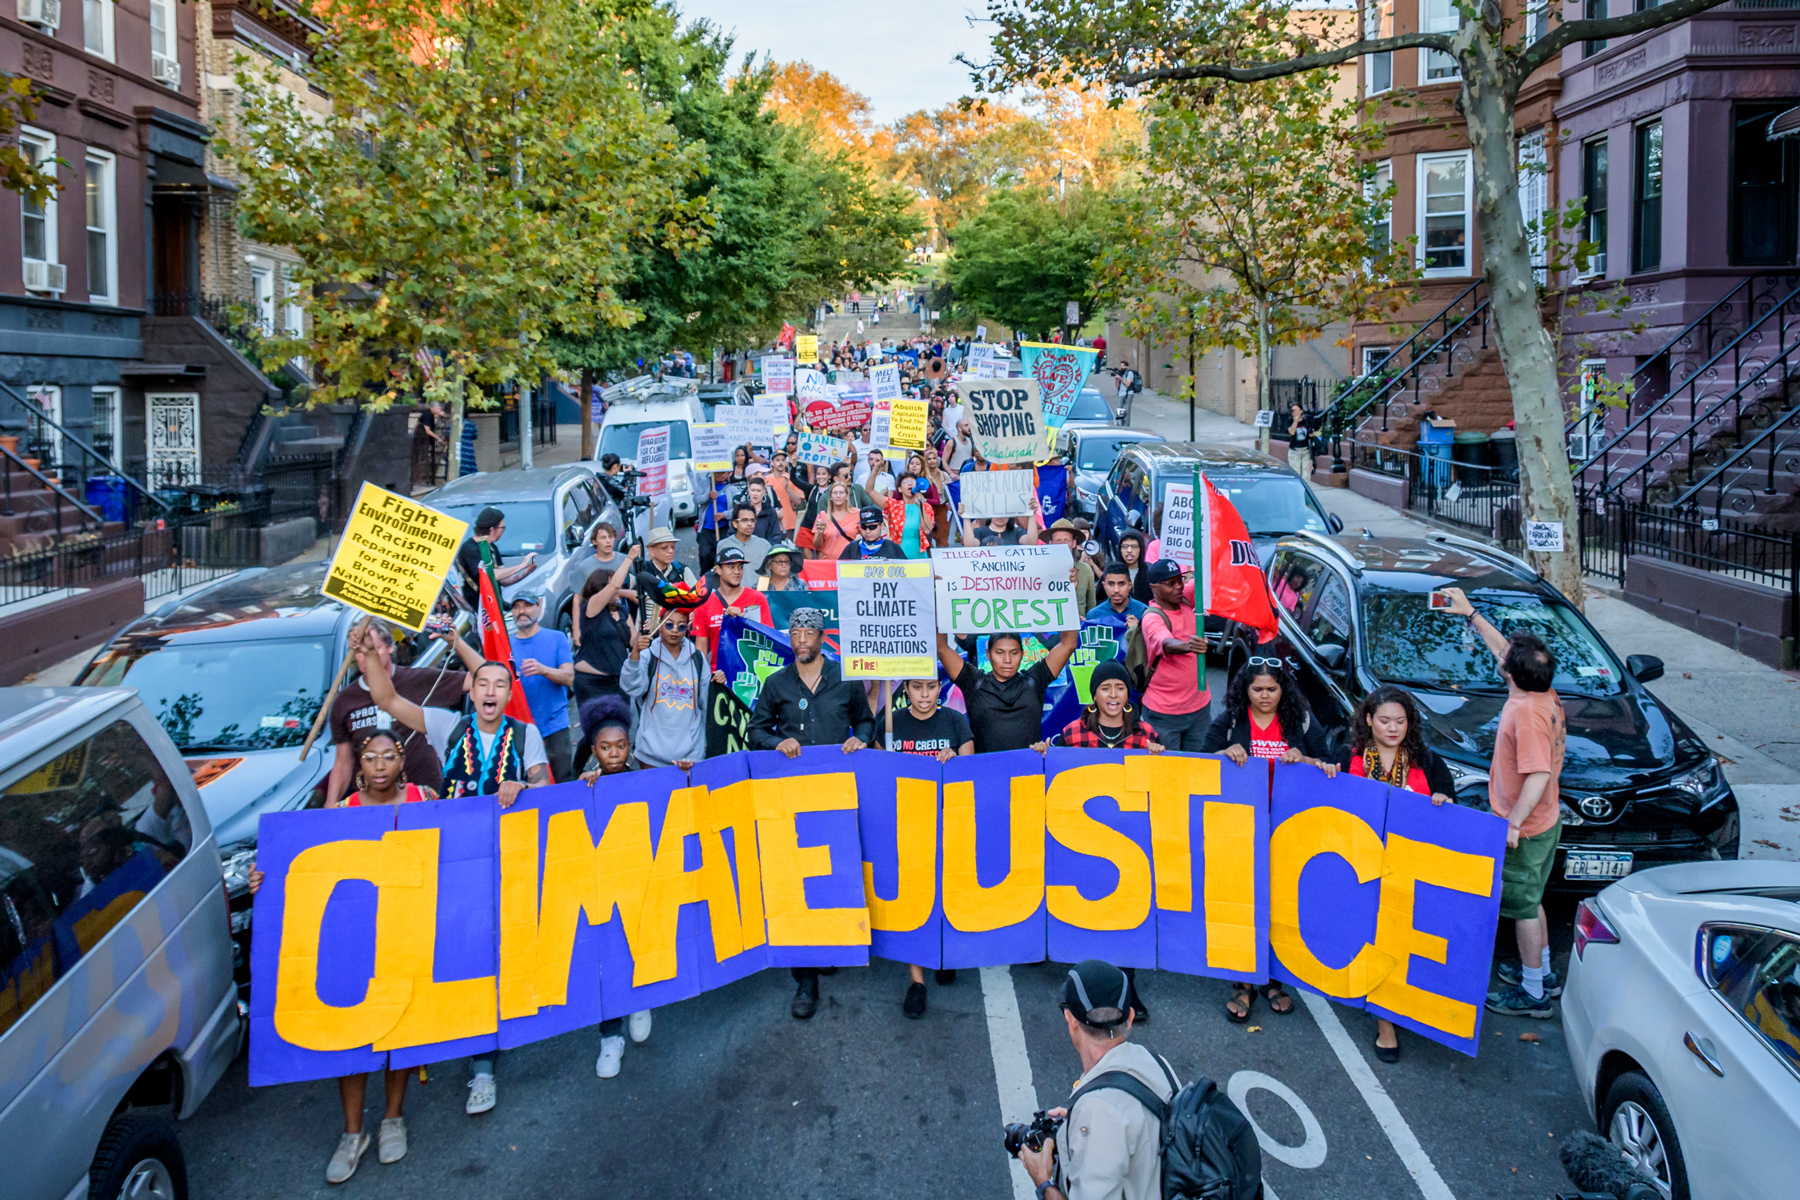 Activist group Earth Strike NYC announced a radical frontline coalition gathering in Sunset Park to support UPROSE in its campaign for local community-led climate justice at the Communities Strike For Climate Over Colonialism rally and march on September 27th, 2019 in Brooklyn, NY.